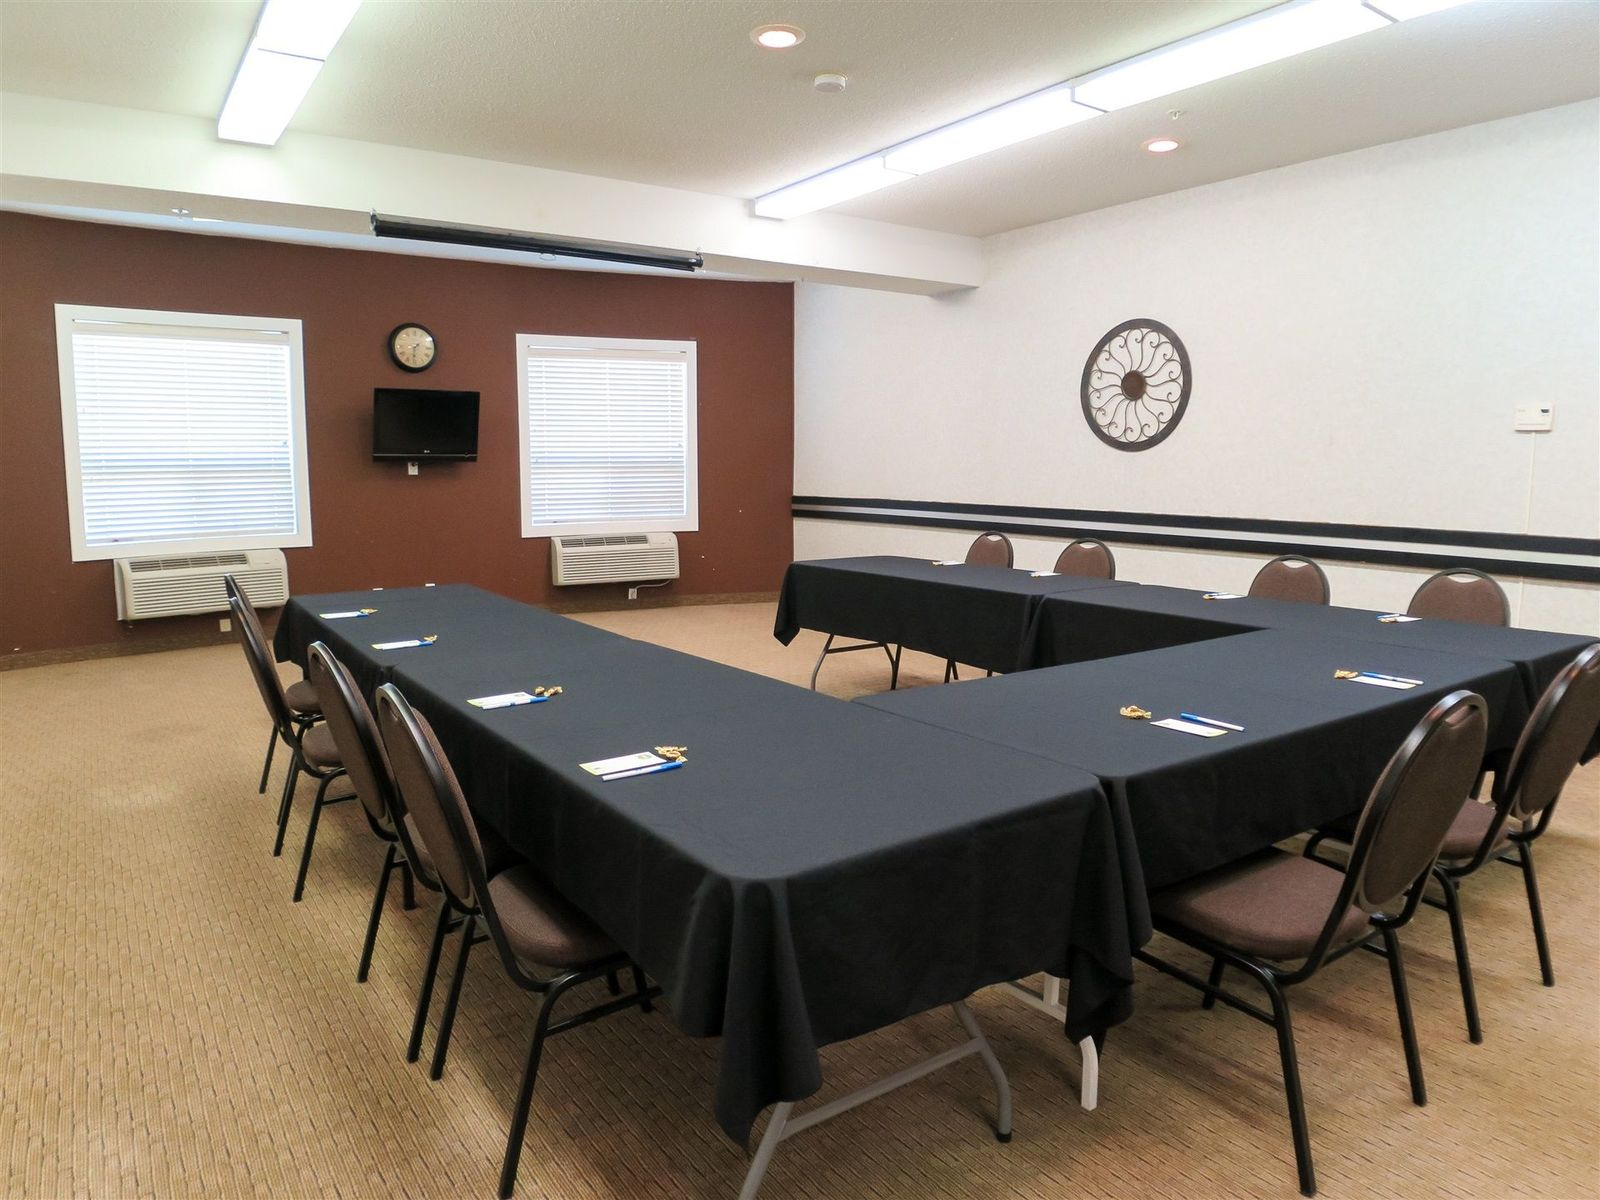 Meeting room in Medicine Hat